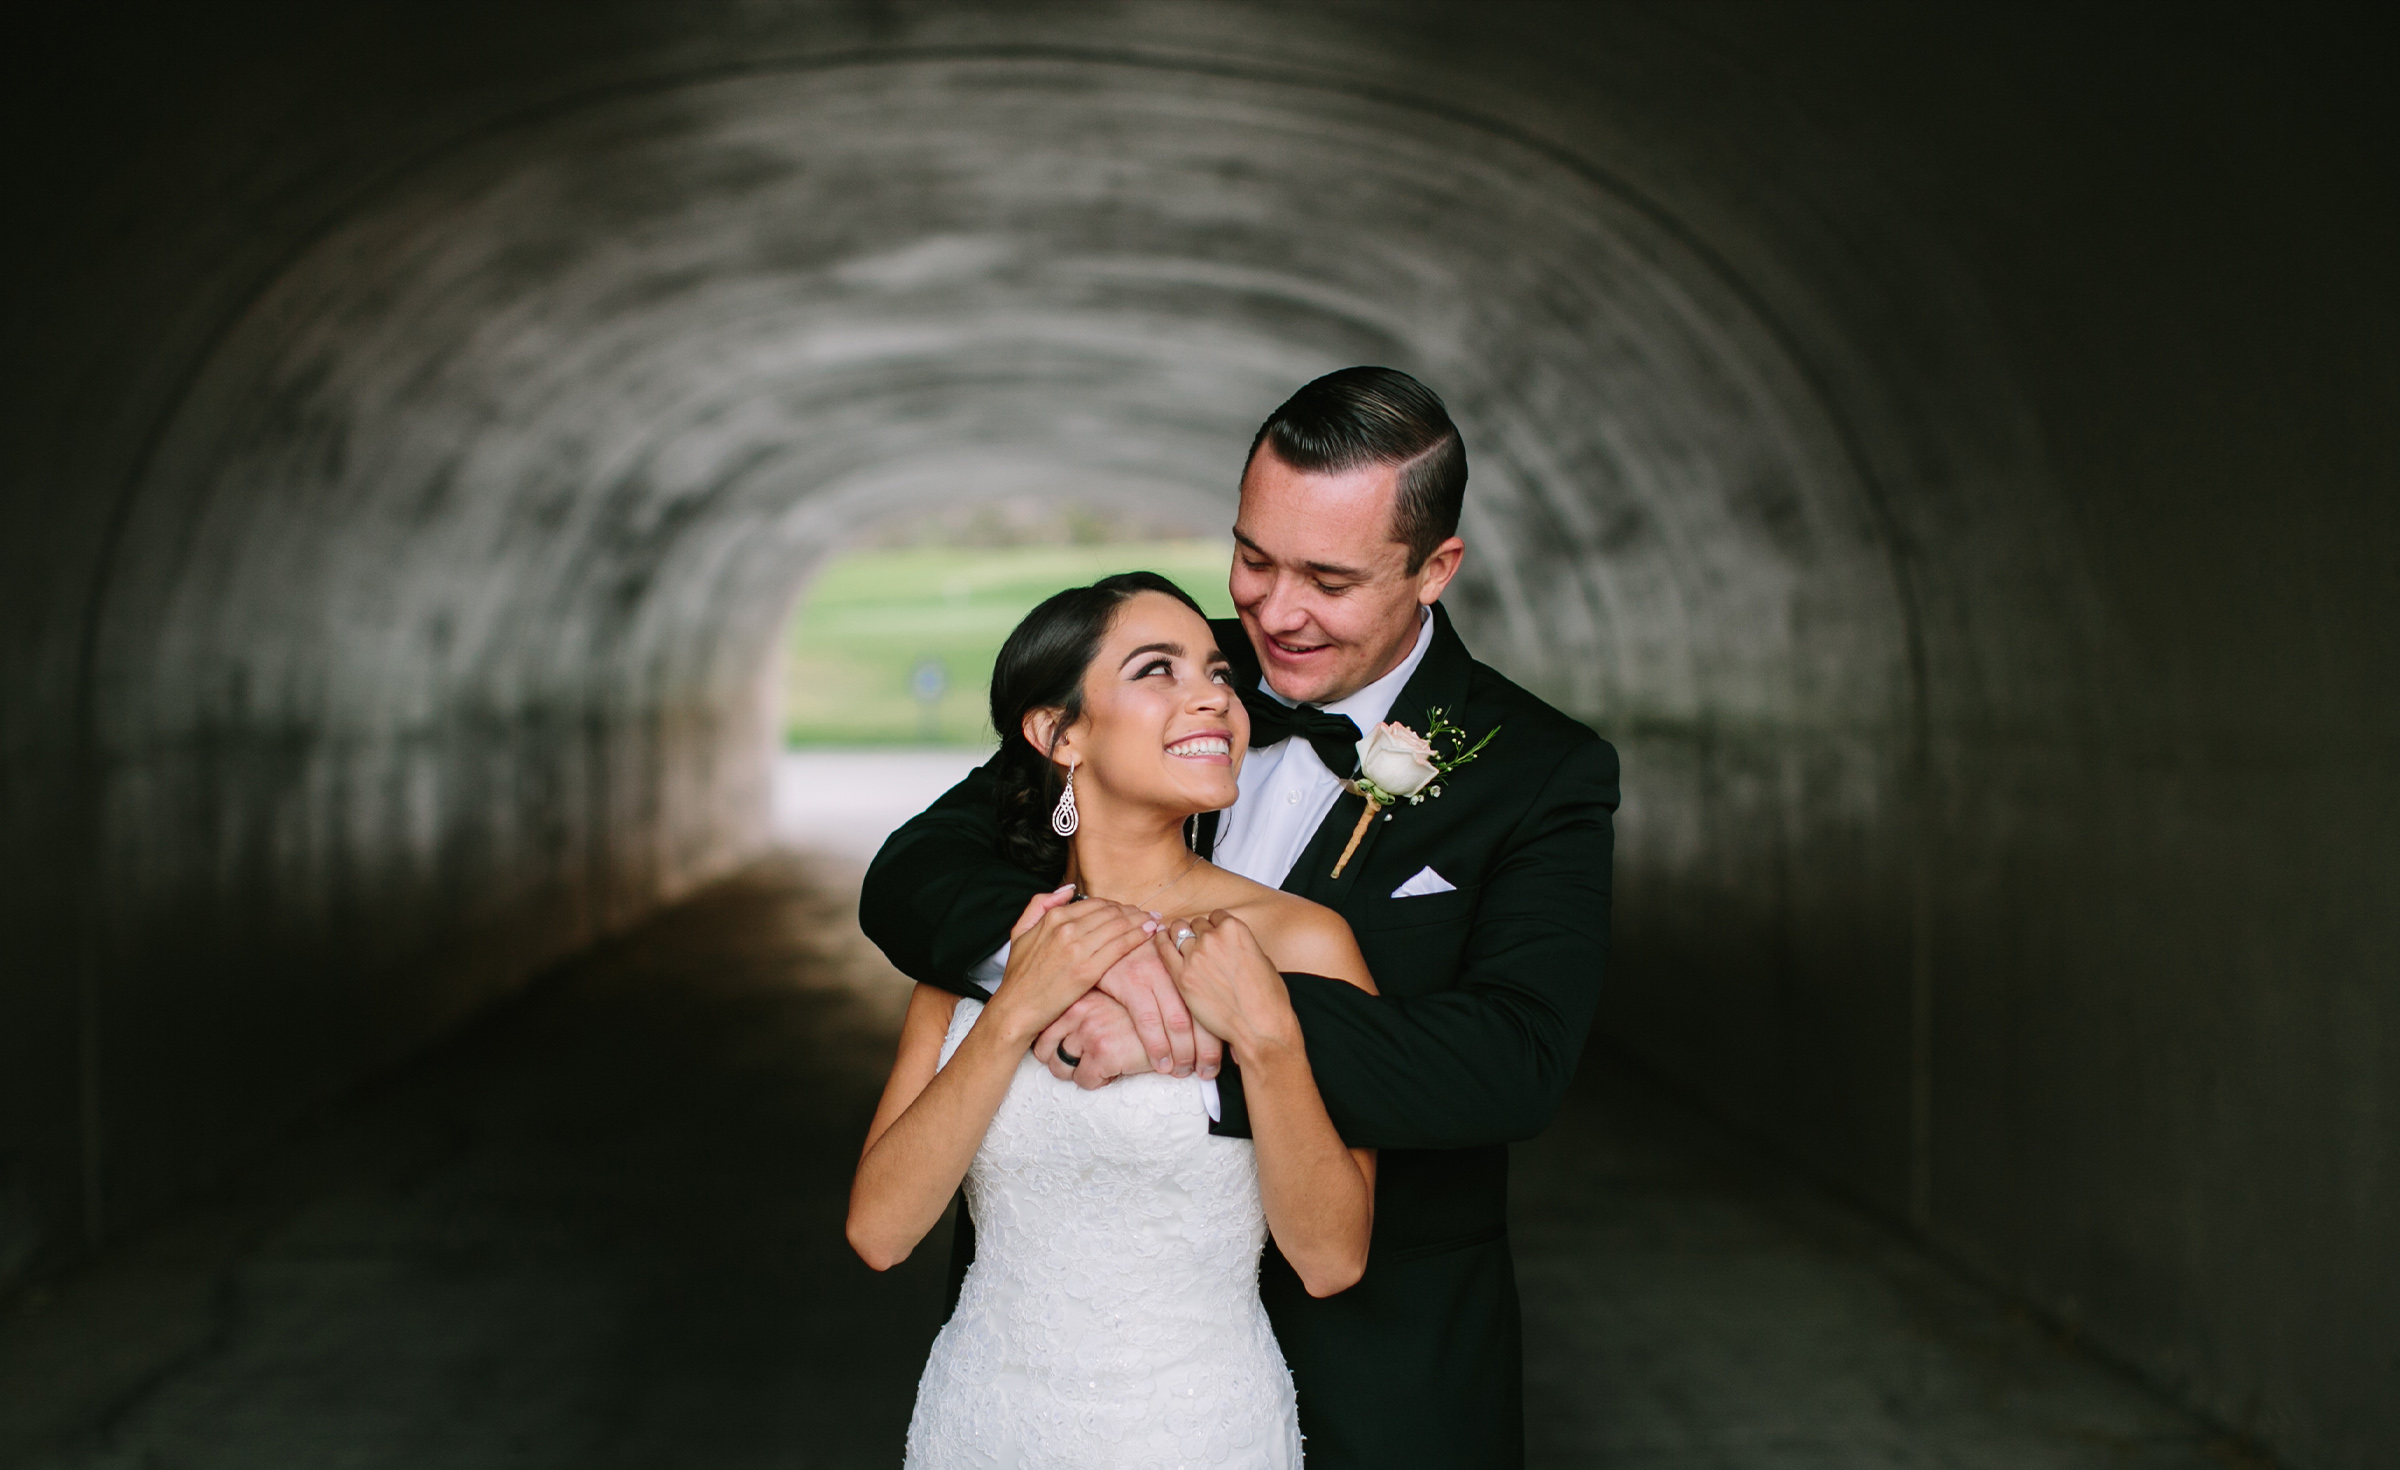 Bride & groom in the tunnel - The Retreat - Corona, California - Riverside County - Wedgewood Weddings